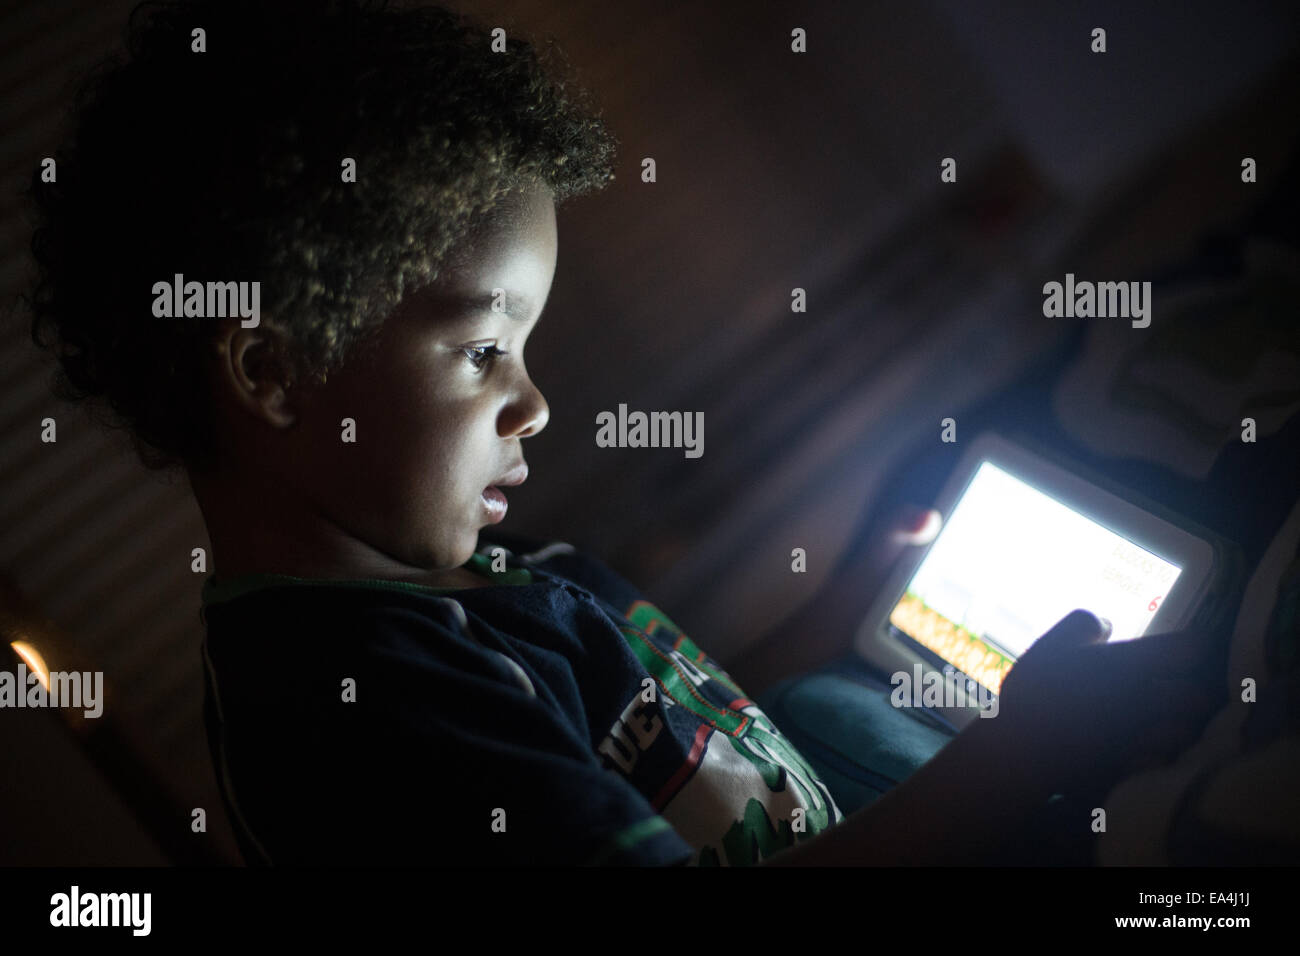 mixed race child playing games and learning on an ipad type device with light lighting up his face in the dark. - Stock Image